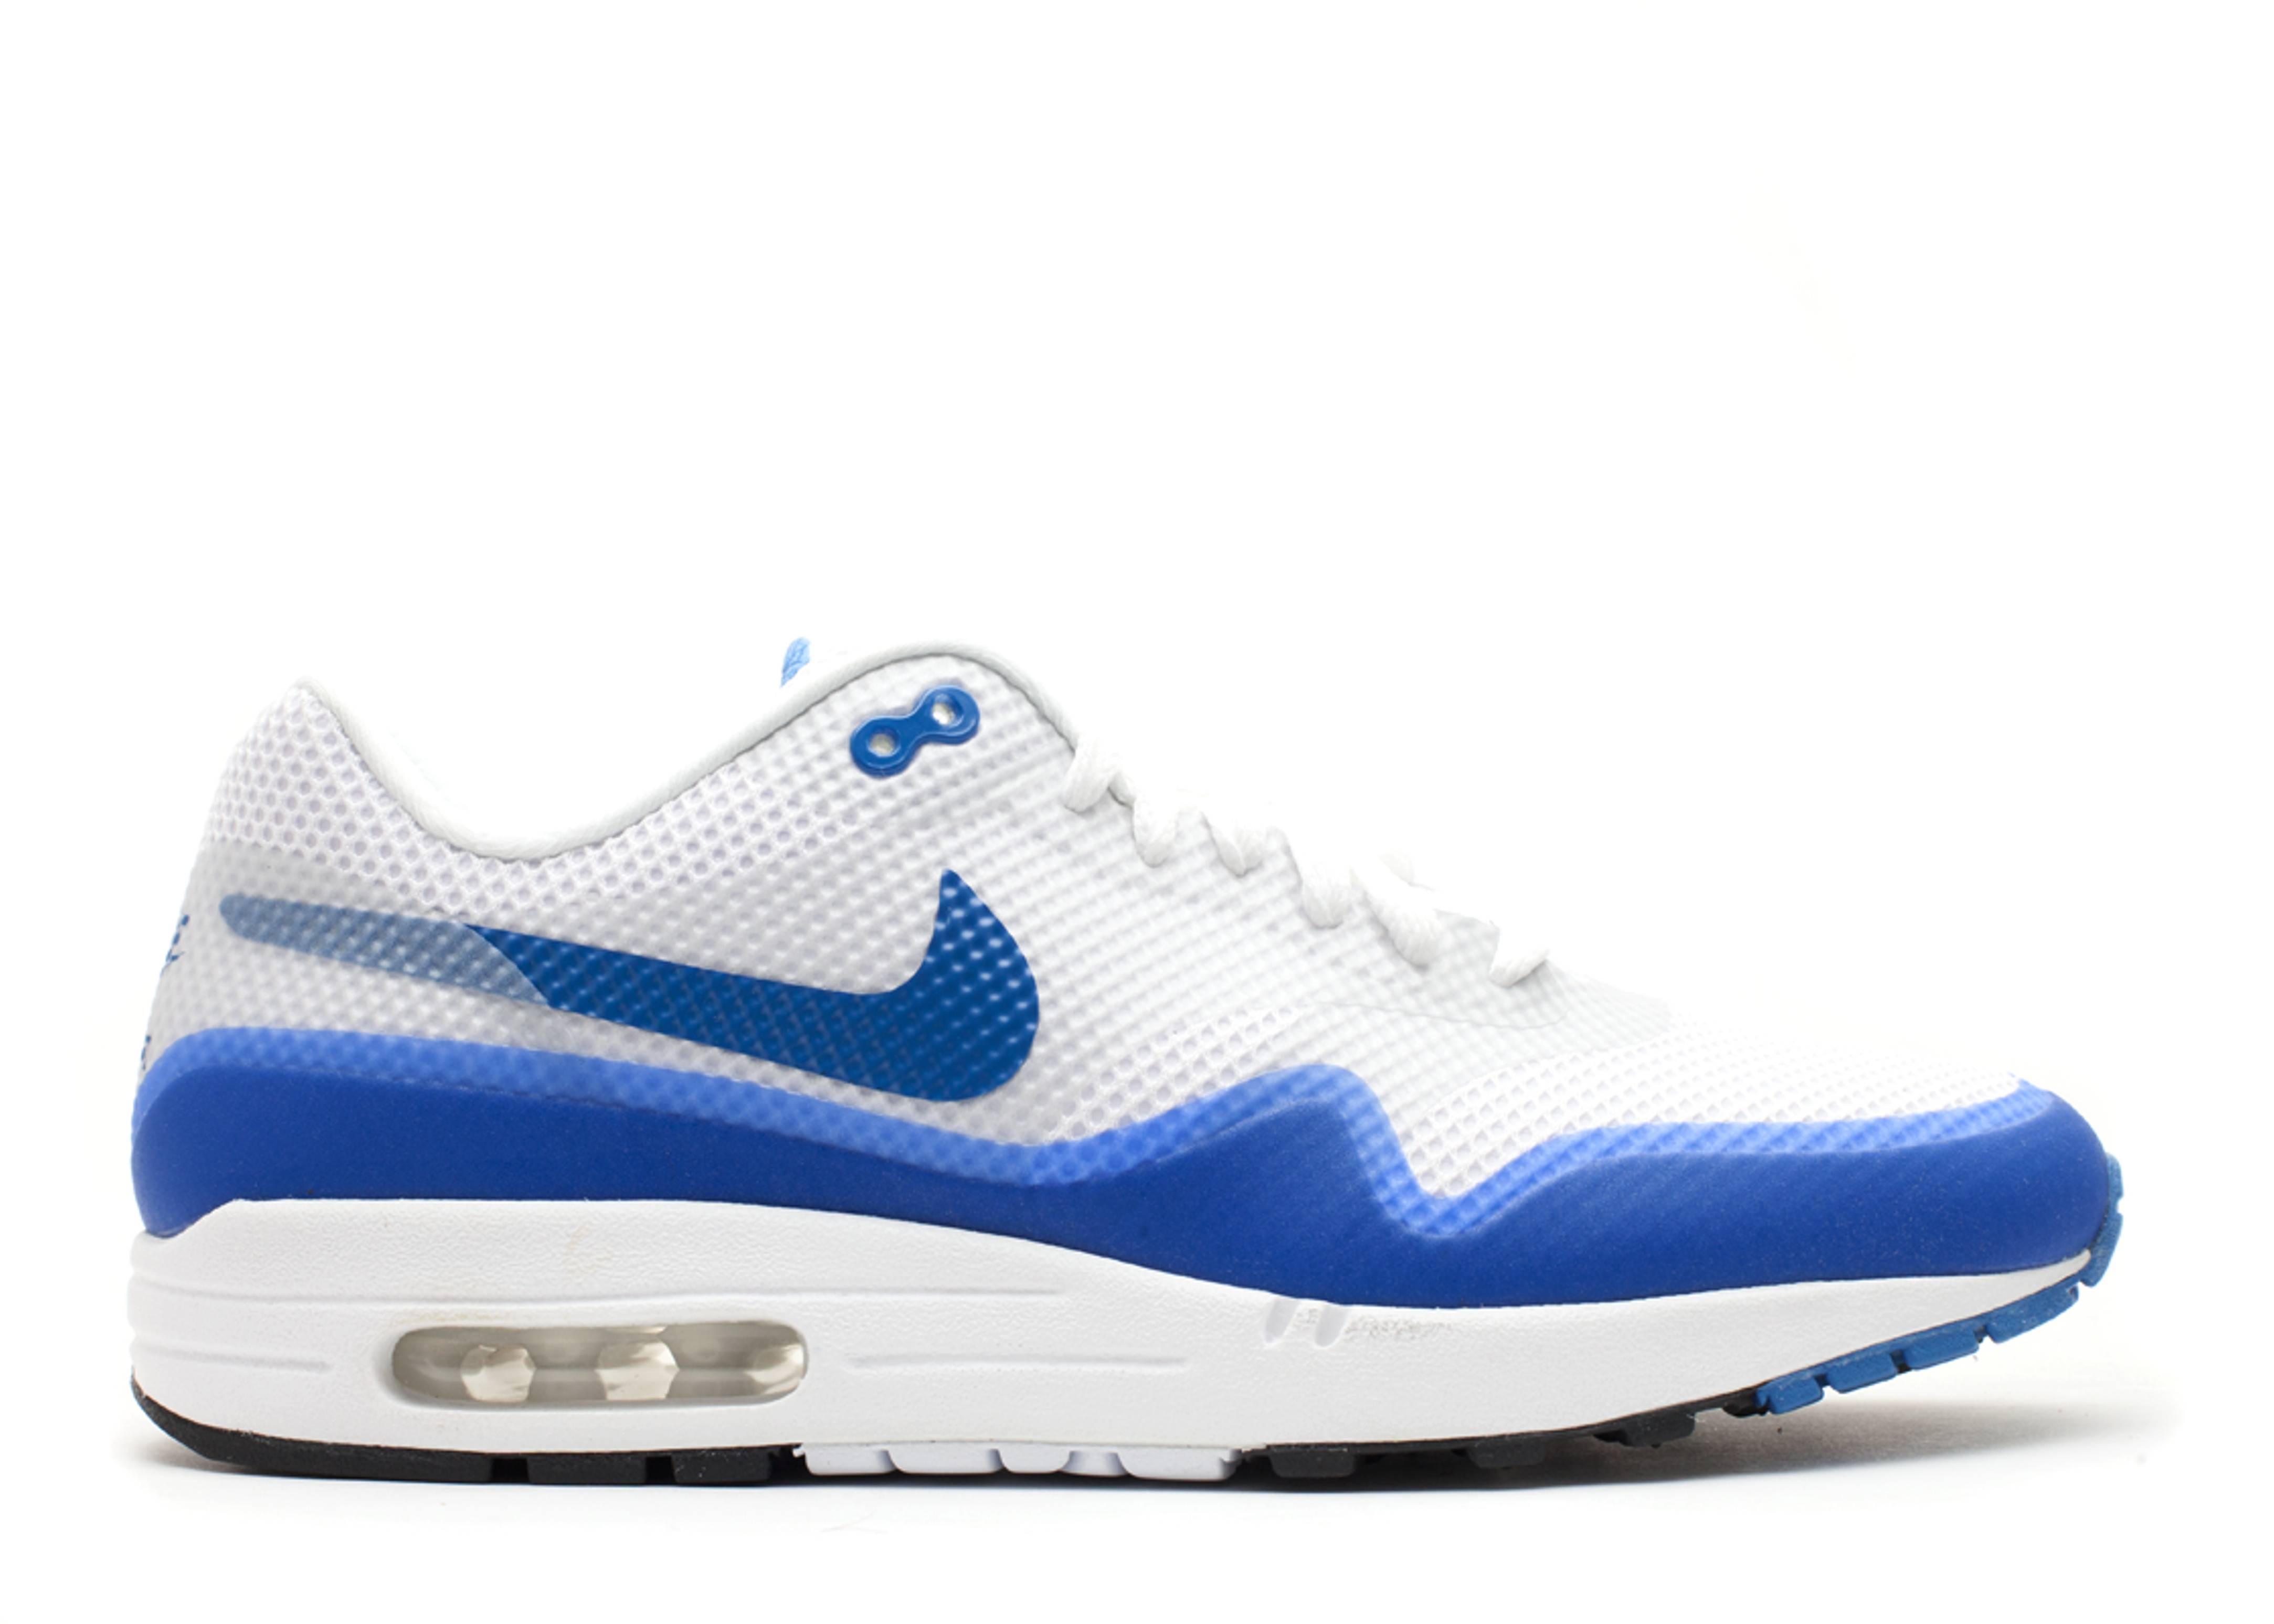 timeless design 49f48 6cfc3 nike. air max 1 hyperfuse